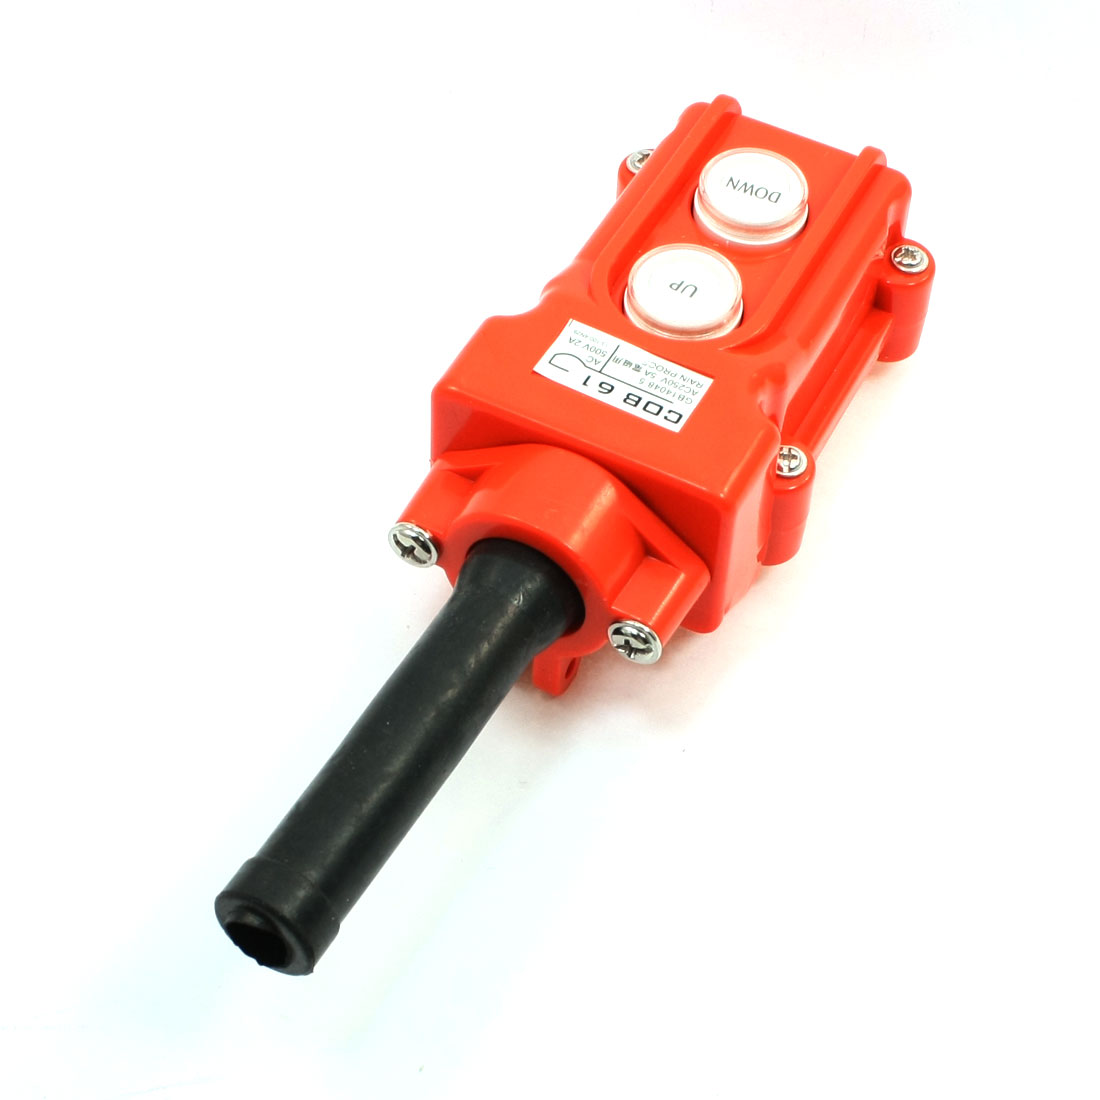 цена на COB-61 Up Down Rainproof Hoist Push Button Switch for Hoist Crane Control 250V 5A